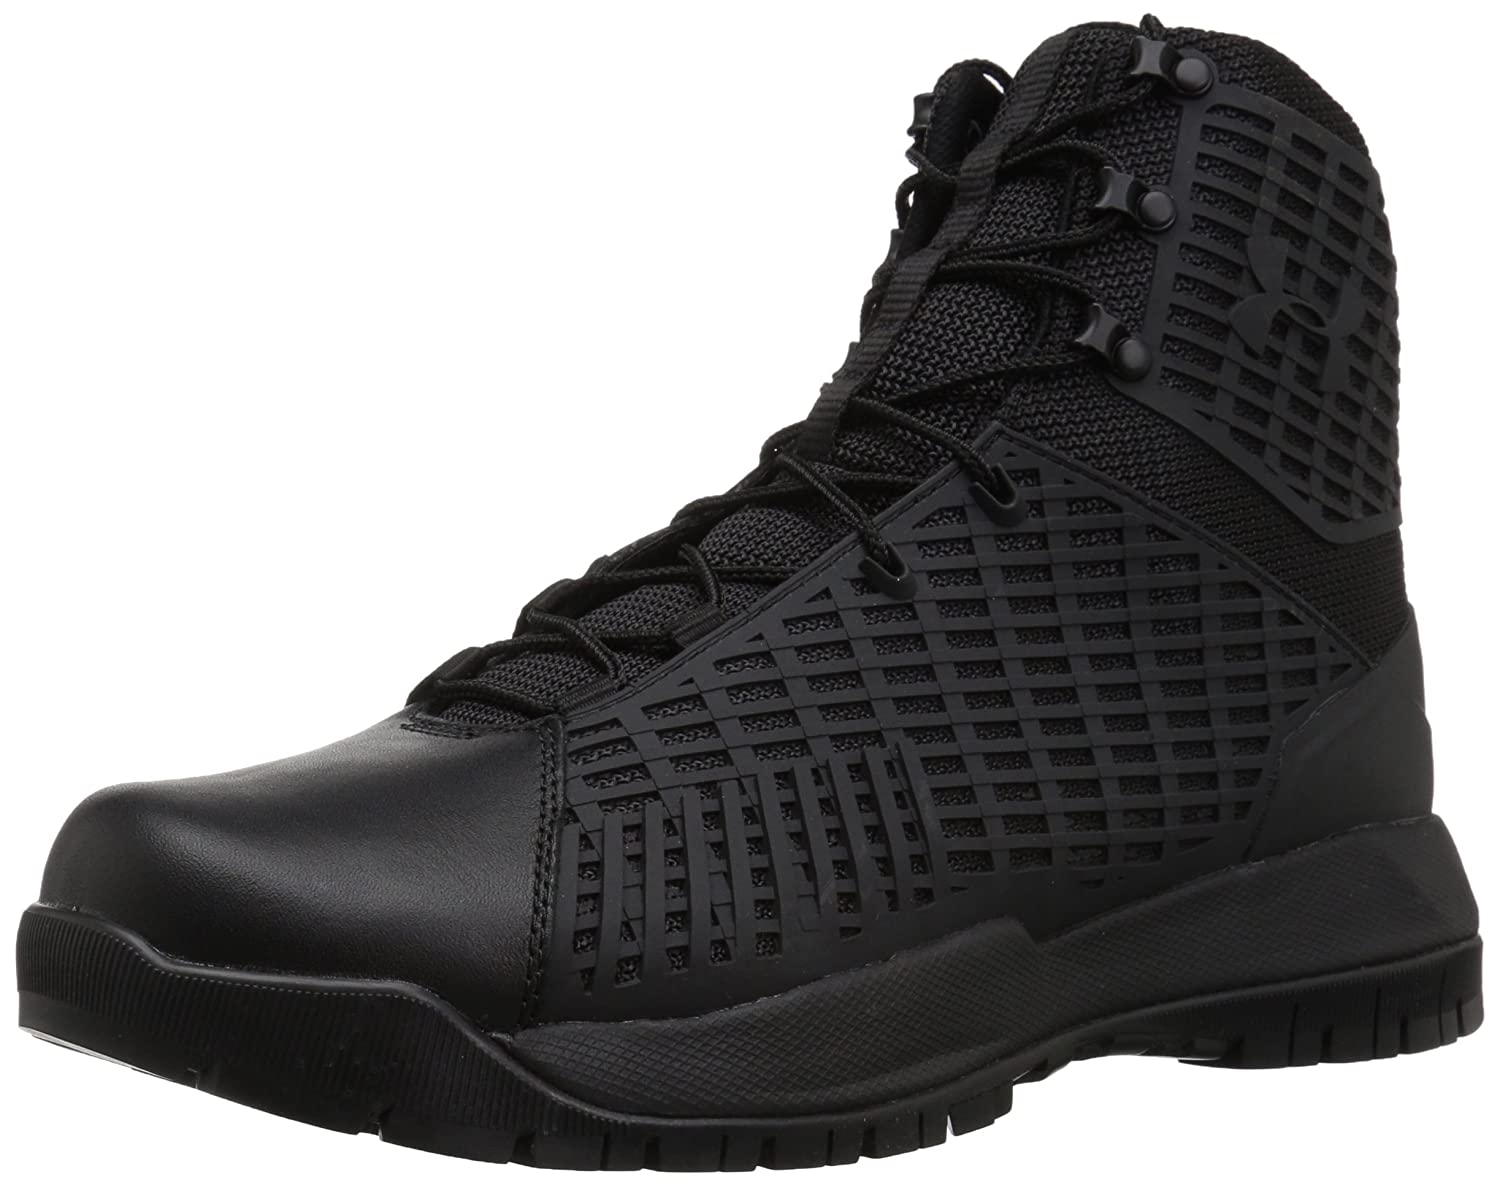 Under Armour Men's Stryker Side Zip Military and Tactical Boot 3020312